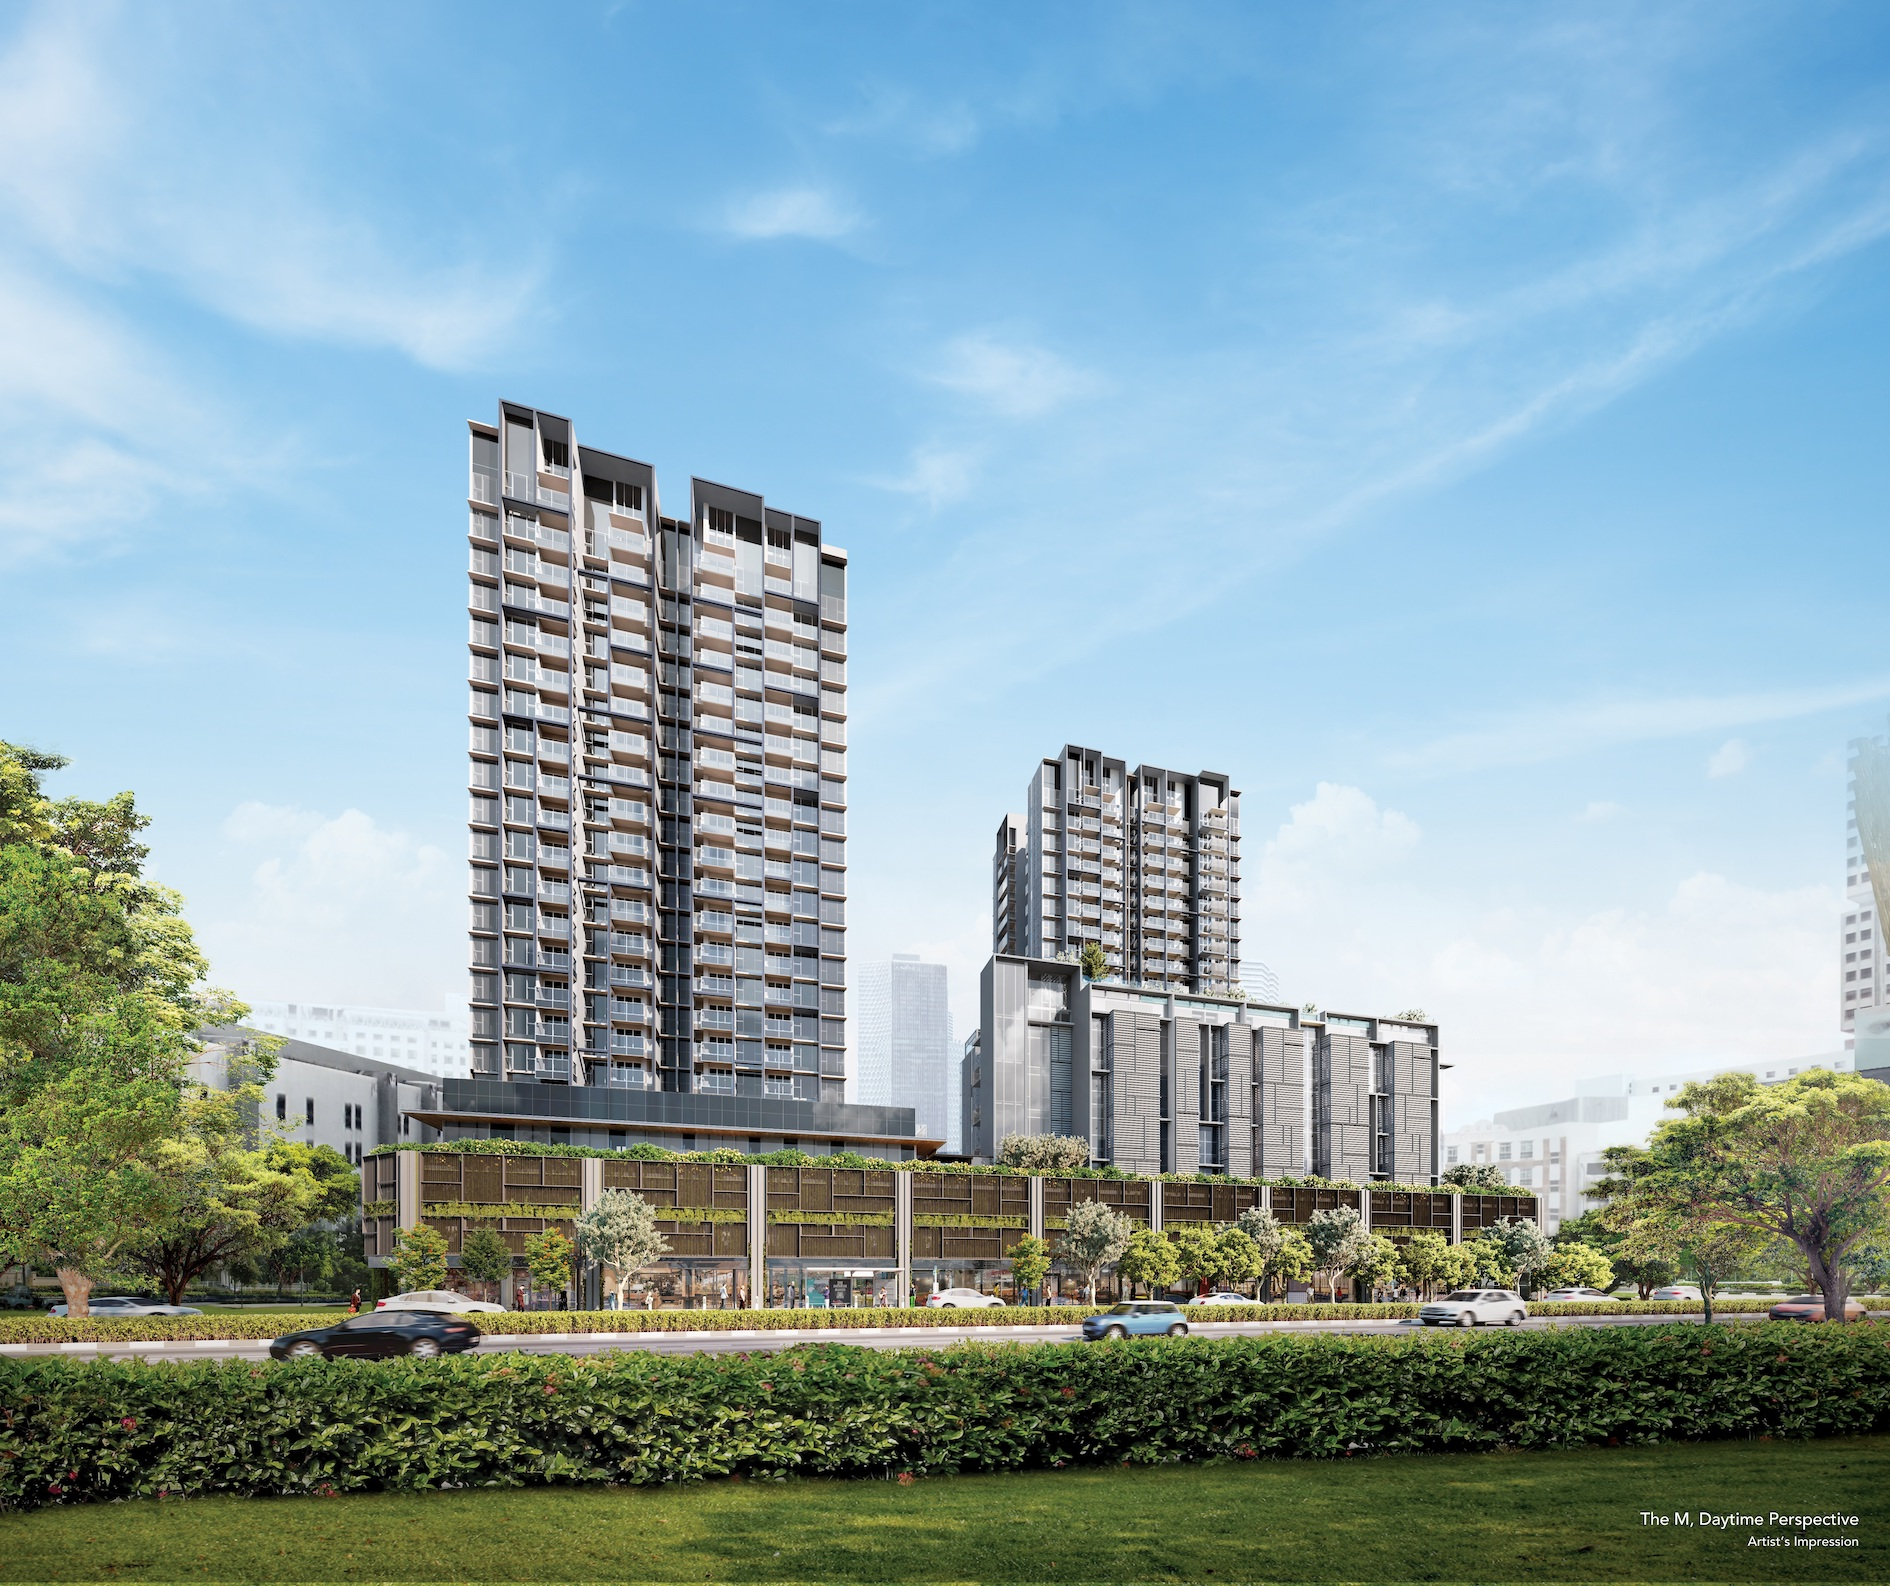 Artist's impression of the 522 units at The M, with two 20-storey residential towers and one six-storey residential block located on top of the commercial podium and carpark (Photo: Wing Tai Asia) - EDGEPROP SINGAPORE